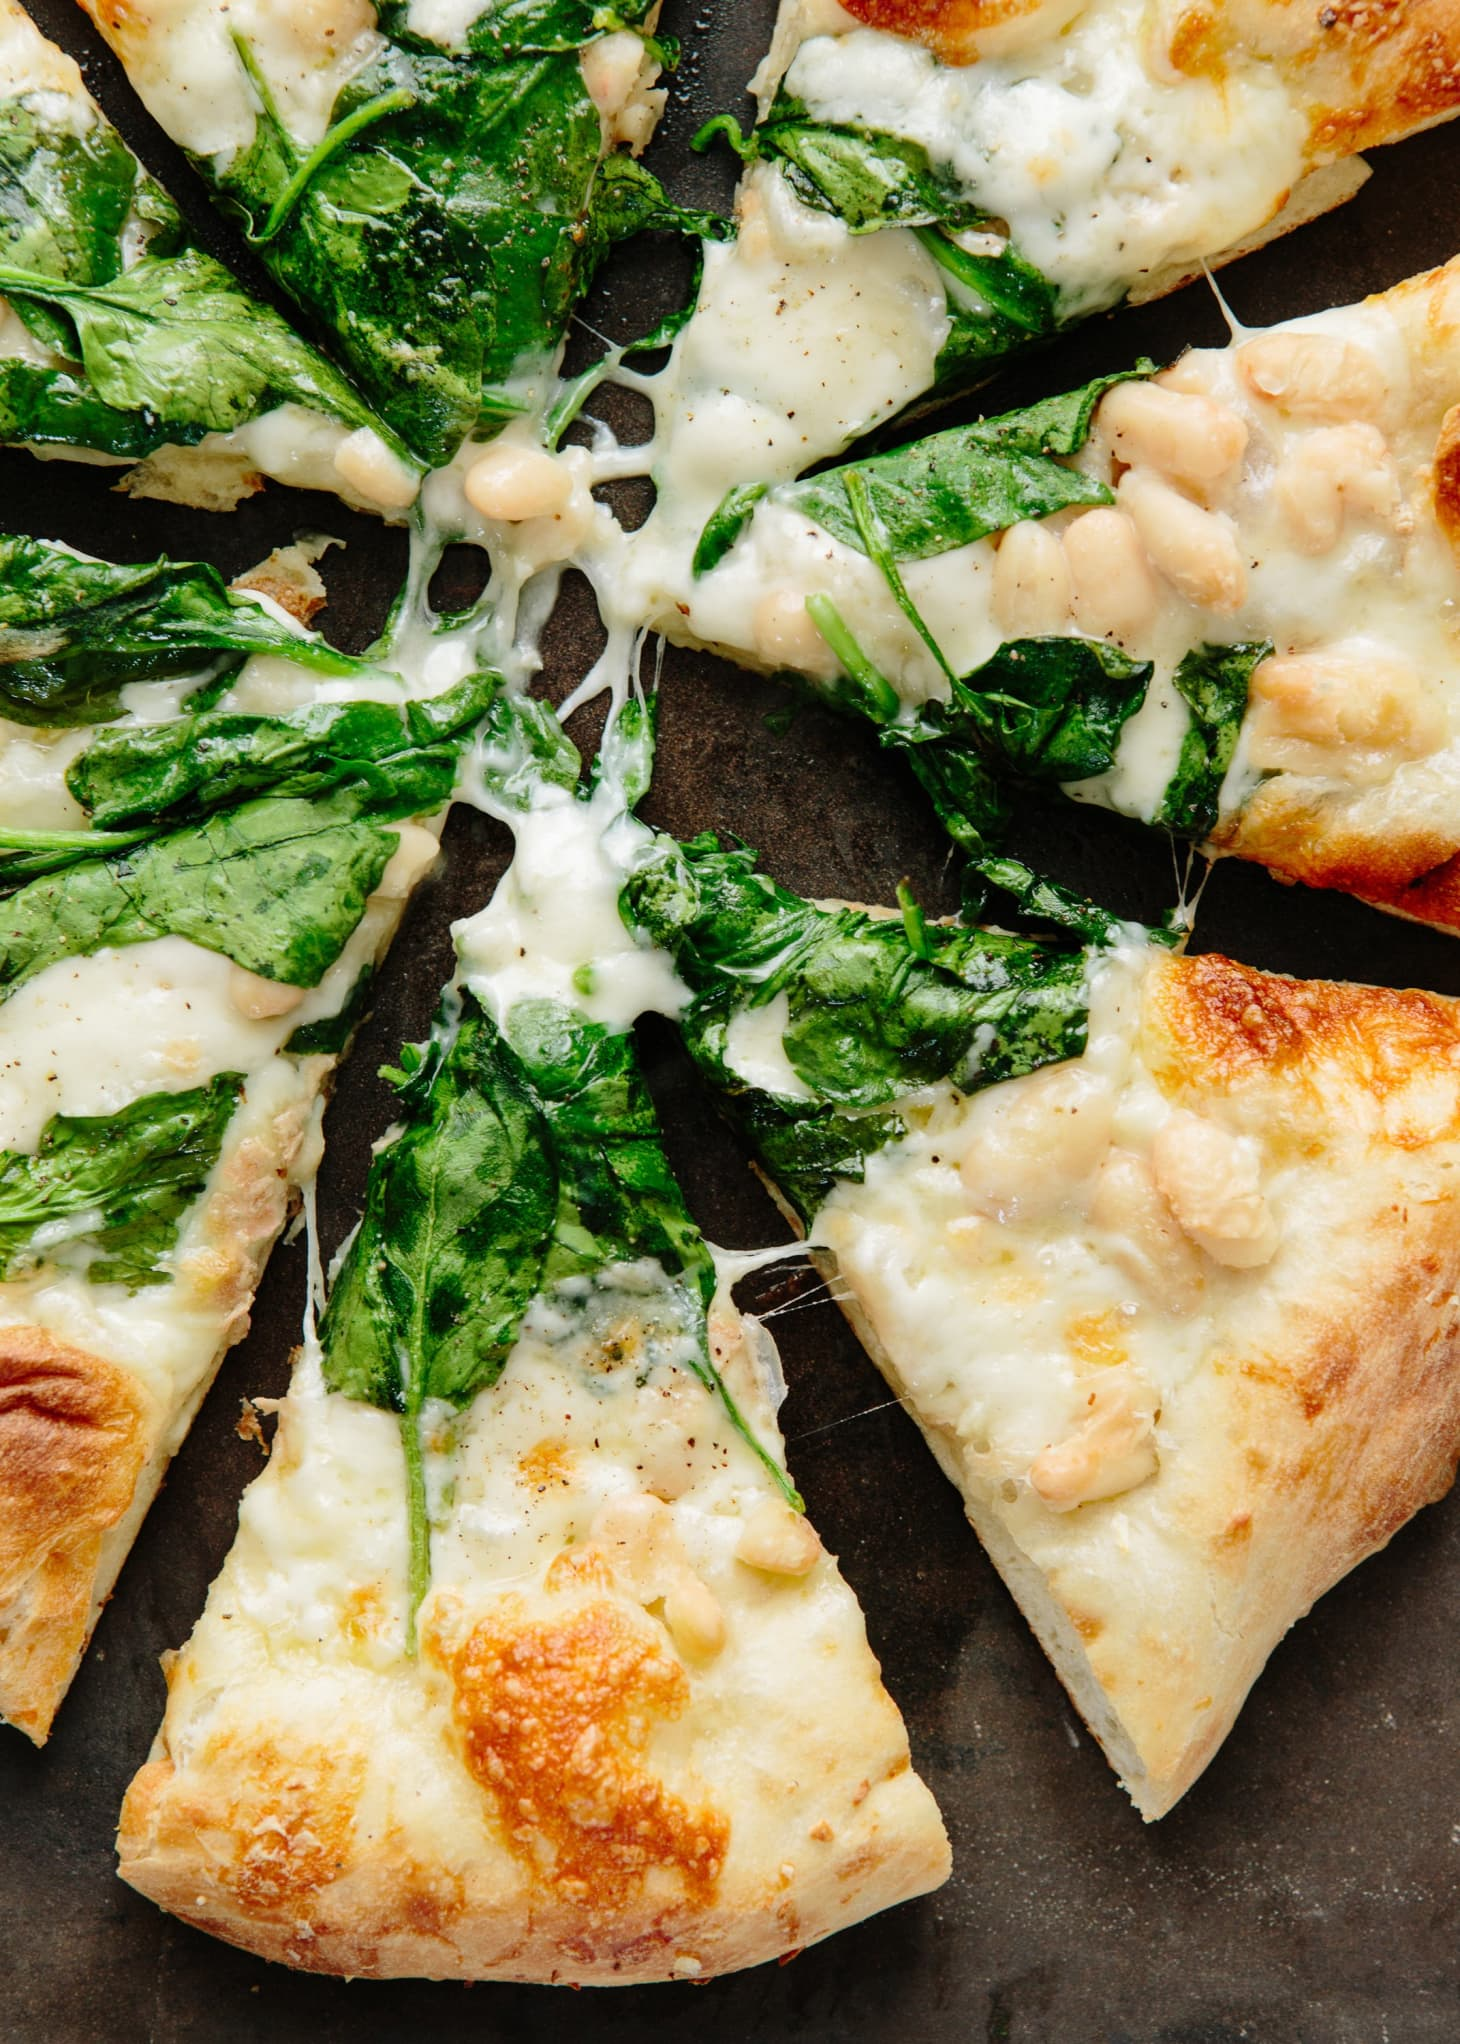 Your Pizza Doesn't Always Have to Have Mozzarella Cheese